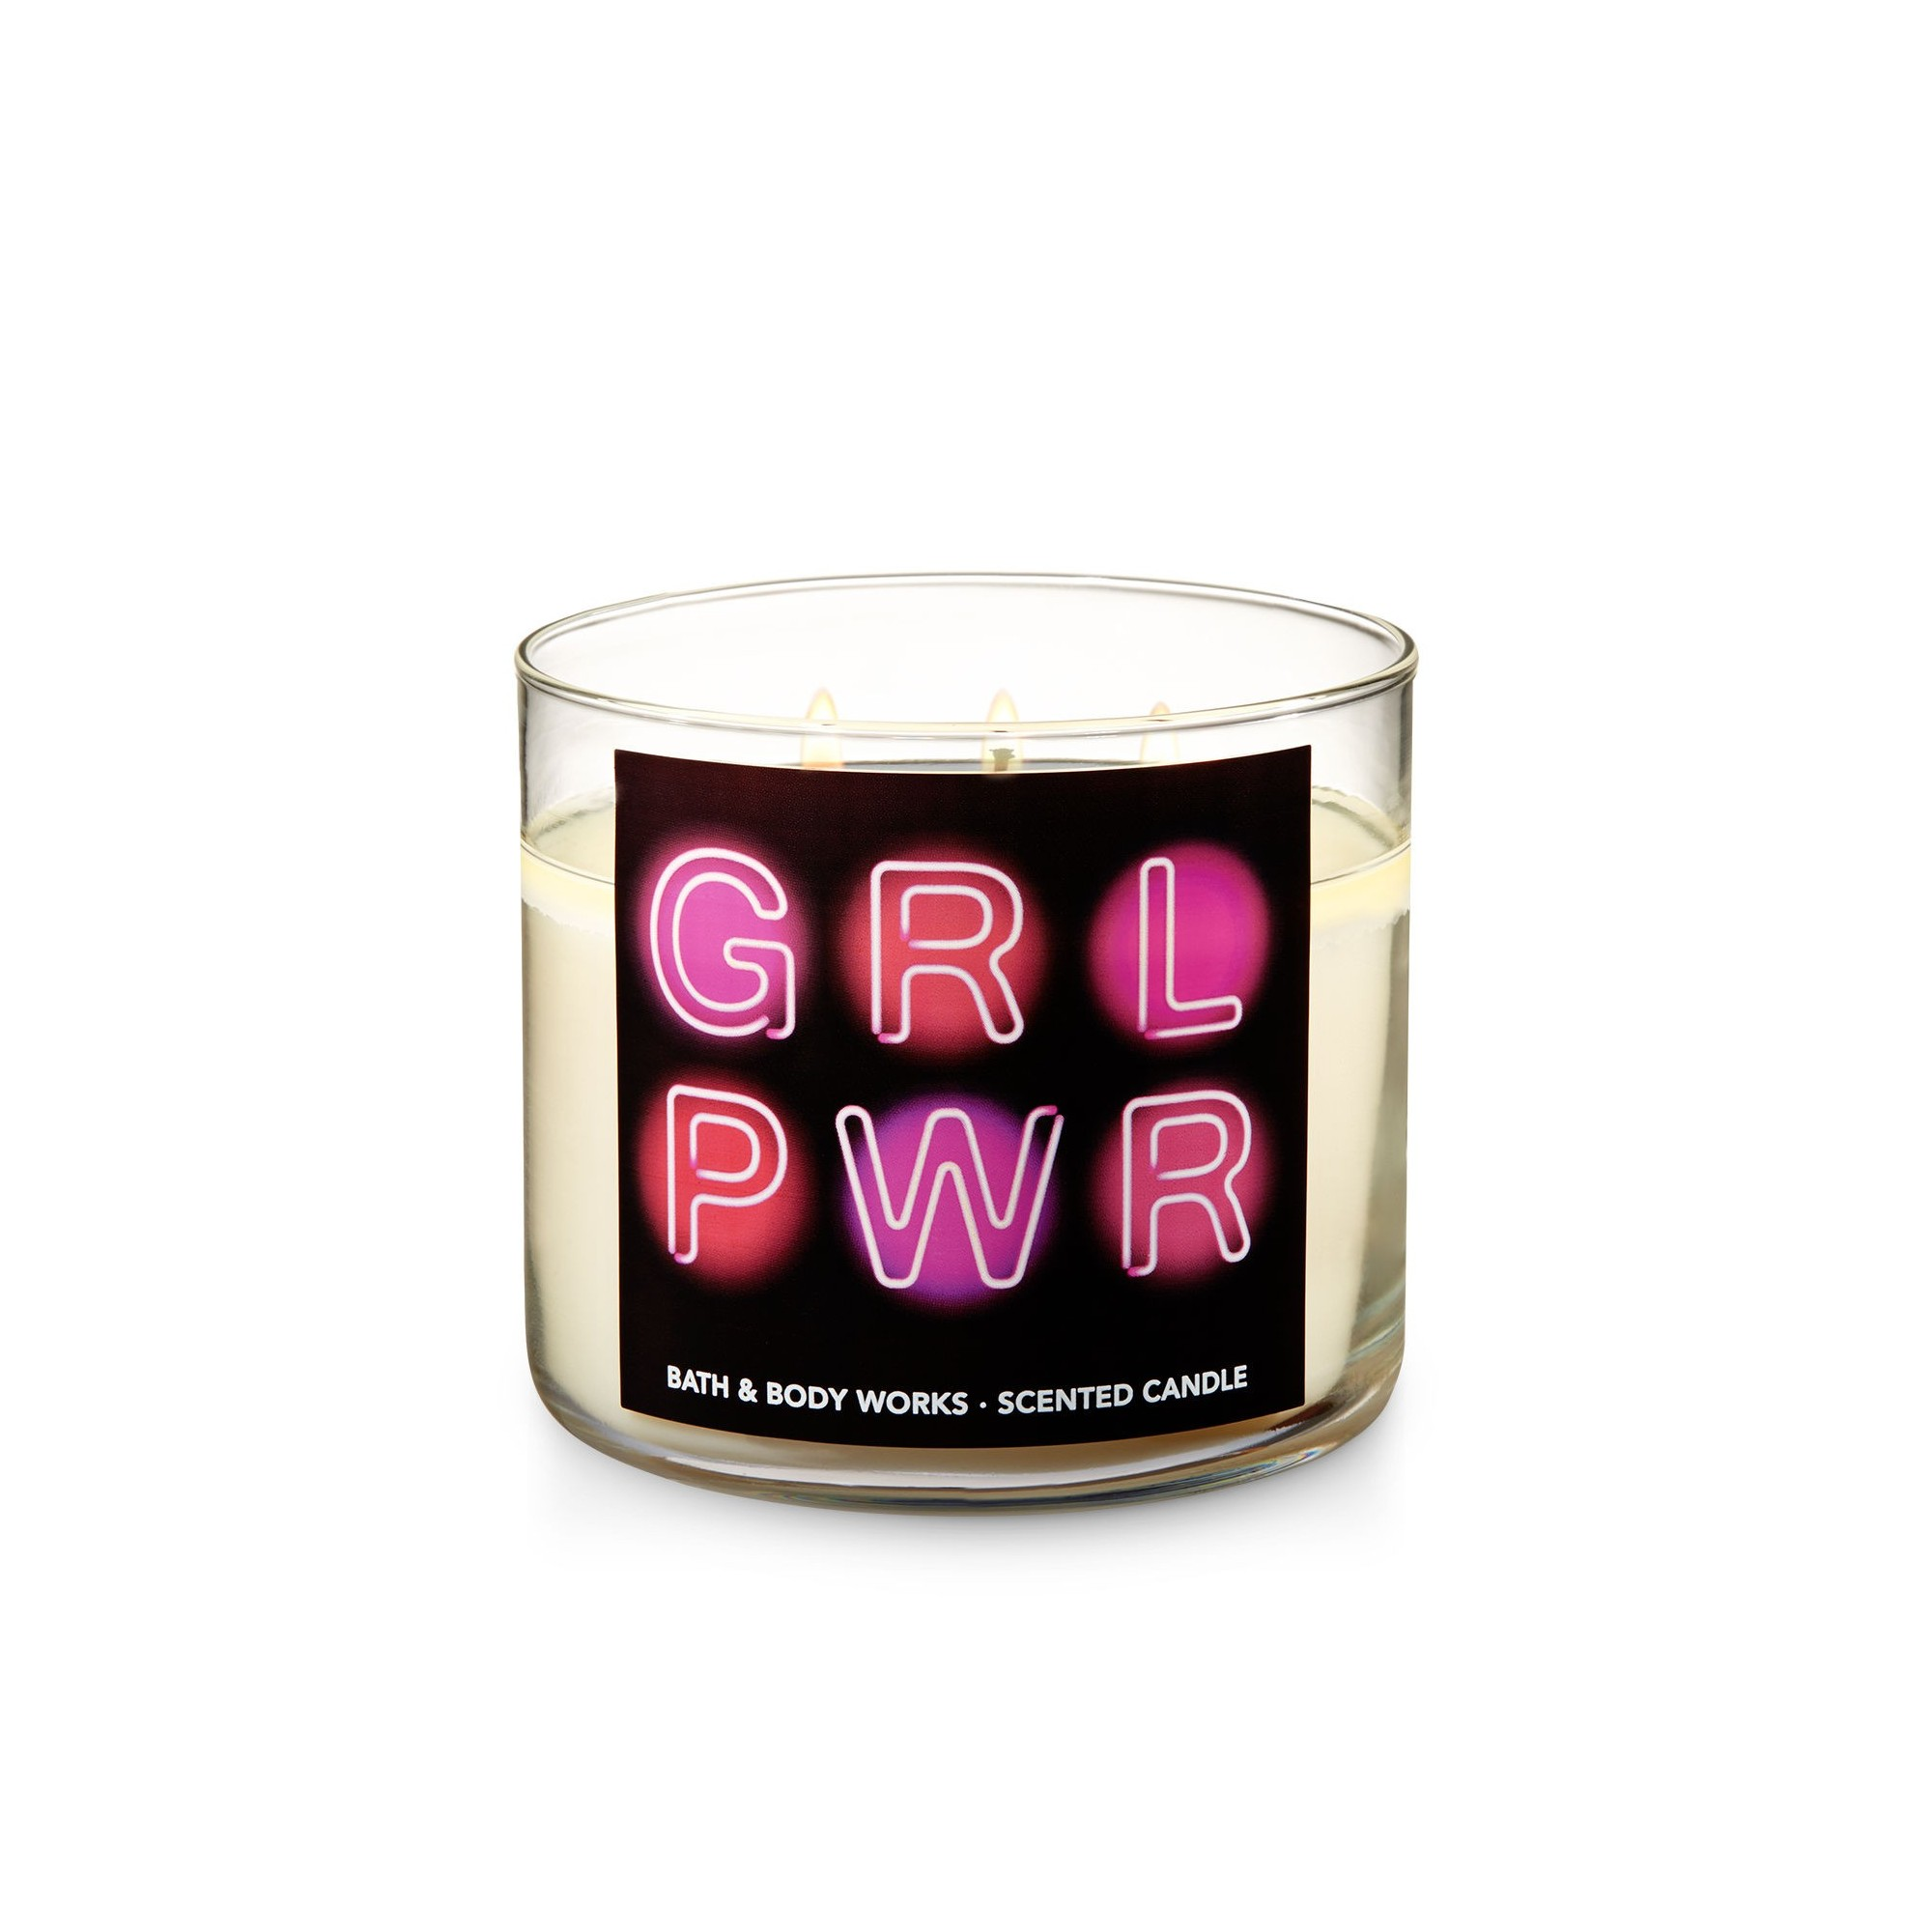 Bath & Body Works Strawberry Cupcake 3 Wick Scented Candle